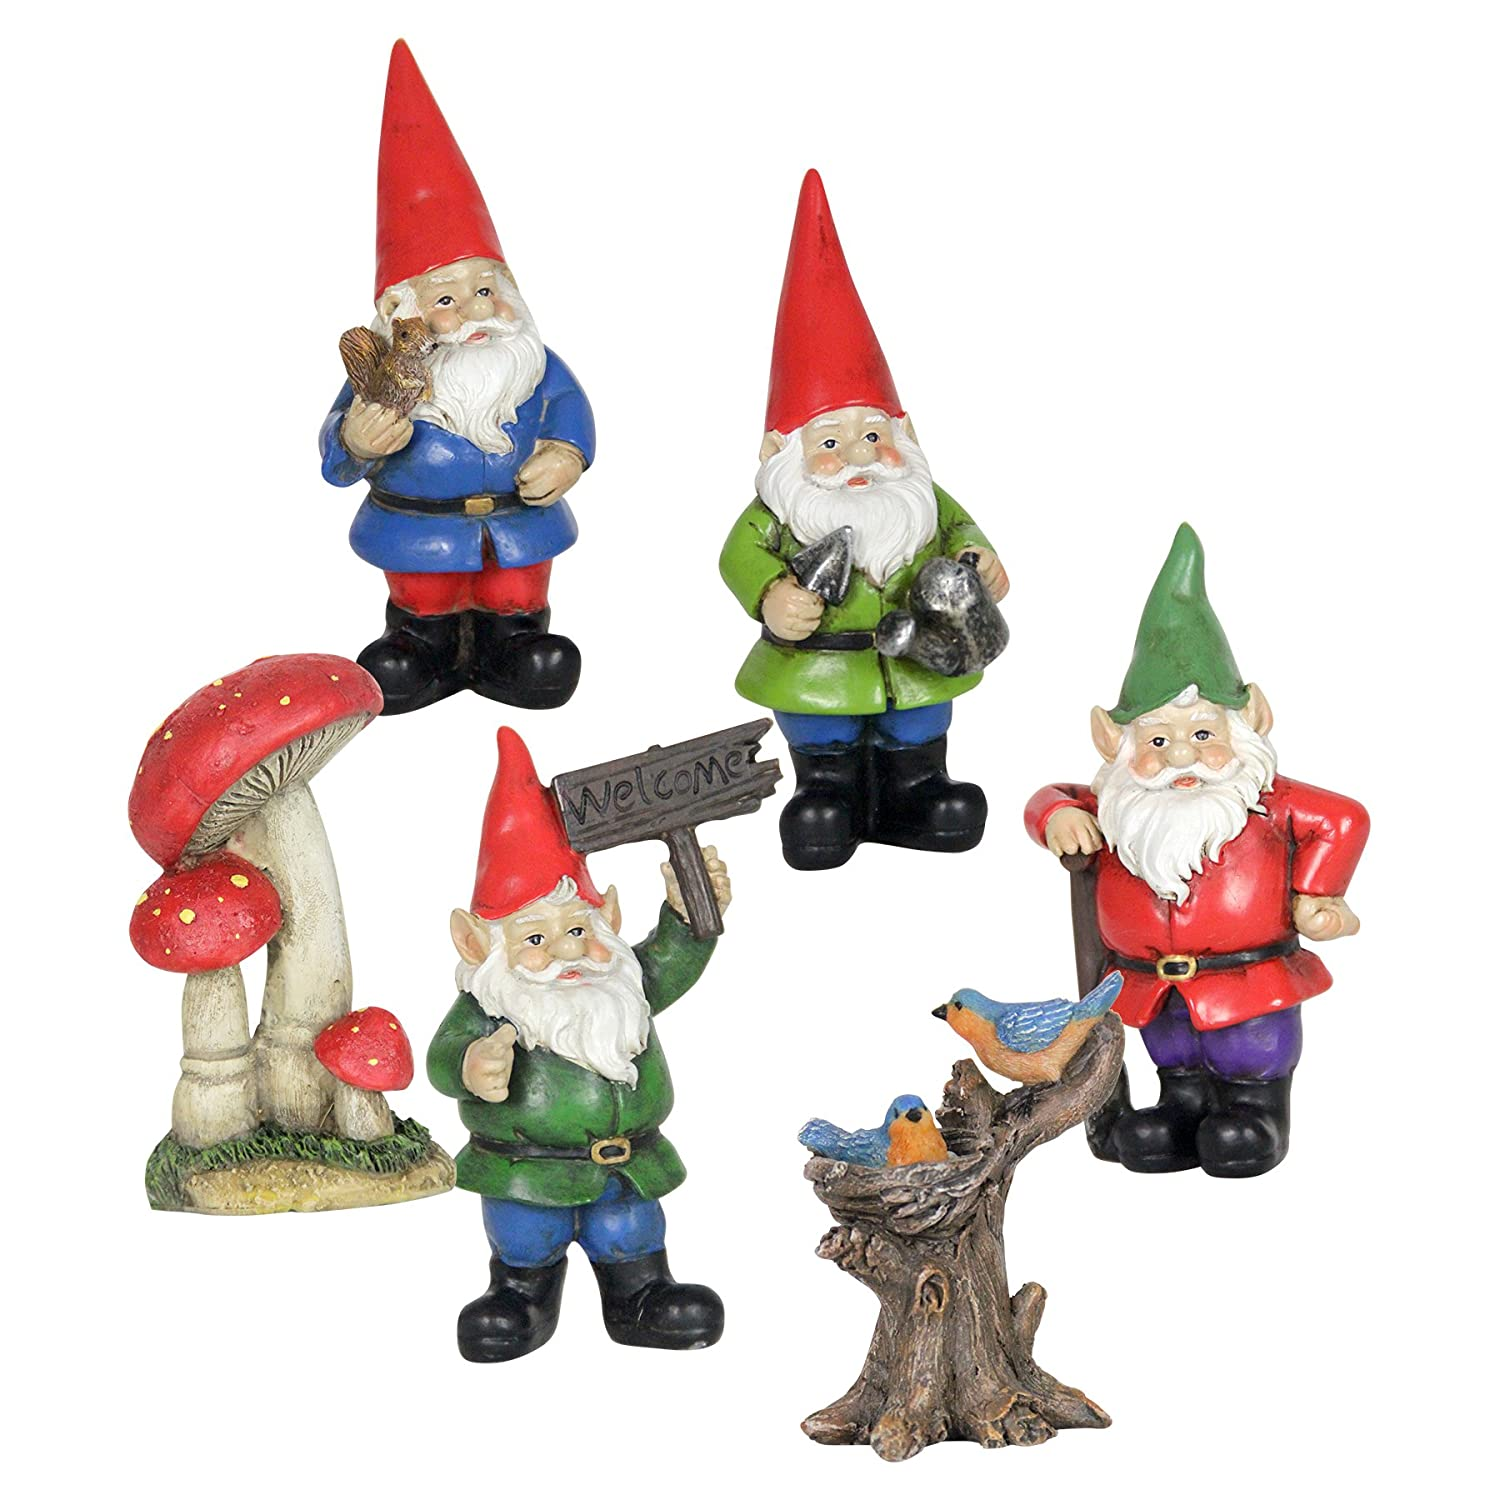 """Exhart Gnome Garden Miniatures 6-Piece Set Outdoor Resin Statues - Handcrafted Garden Figurines, 4 Whimsical Gnomes, Tree Trunk w/Birds & Red Toadstools - Fairy Tale Decor, 2.5"""" L x 2.5"""" W x 4"""" H"""